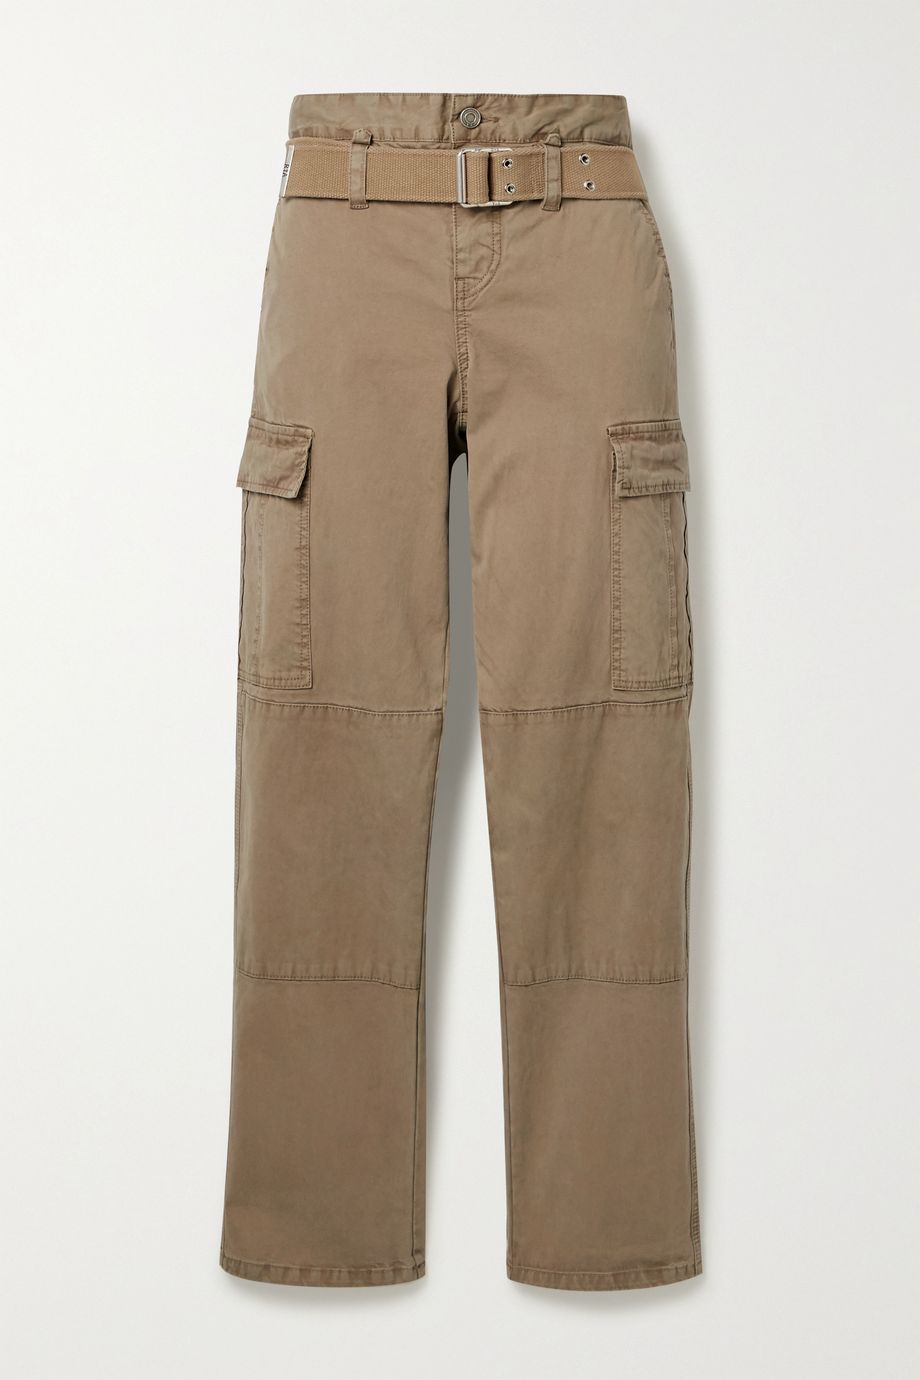 RtA Sallinger belted cotton-blend twill straight-leg cargo pants